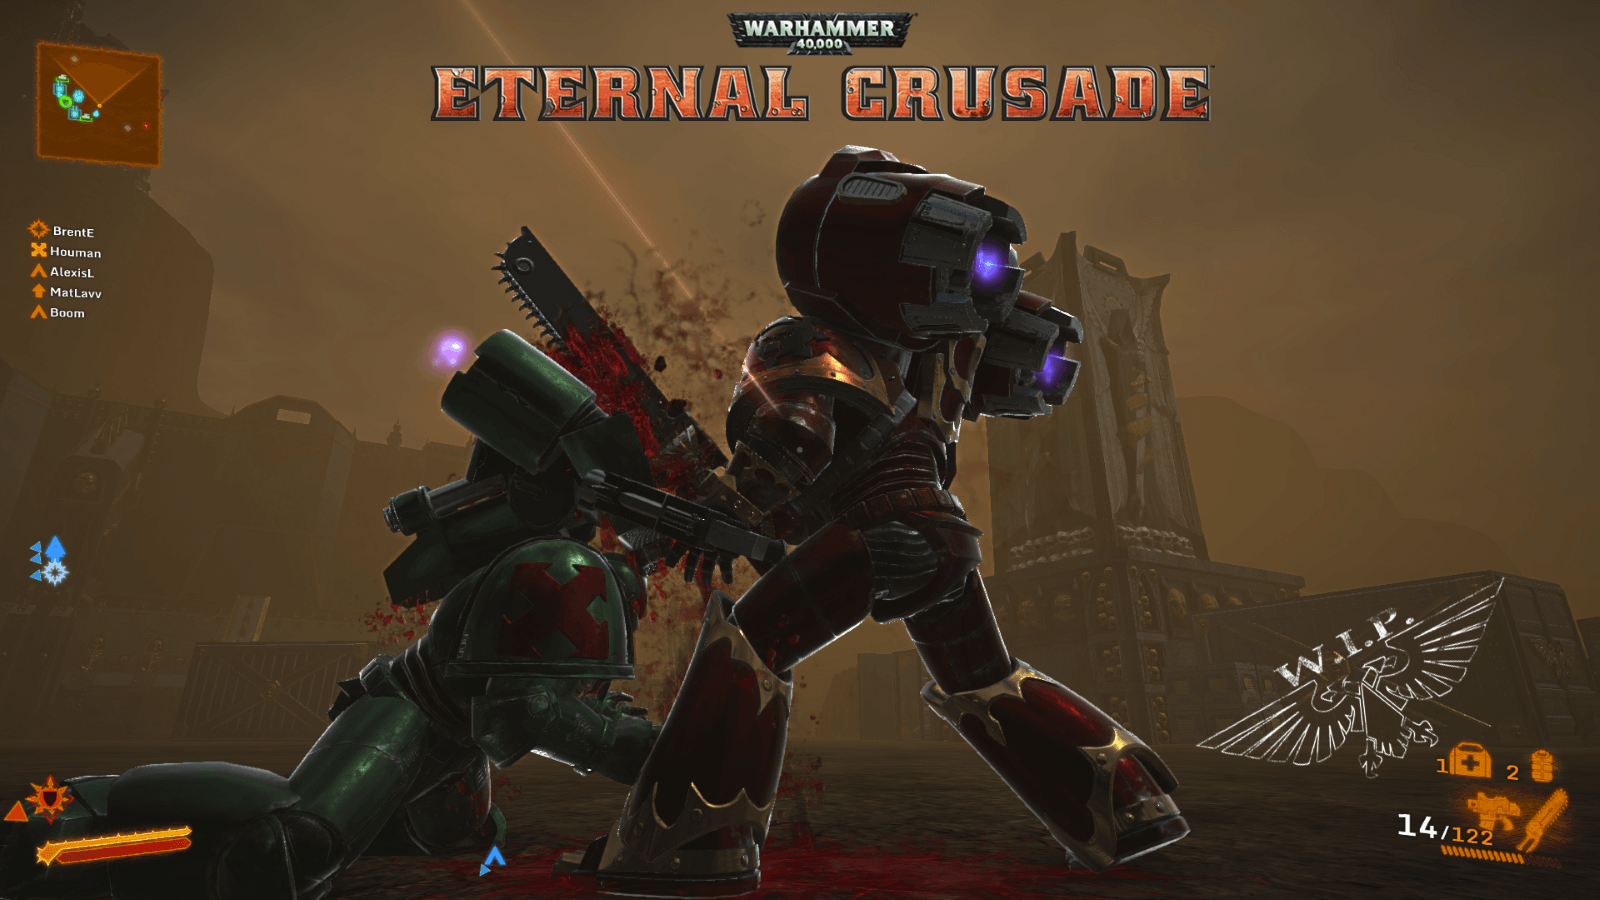 Warhammer 40,000 Eternal Crusade Entering Closed Alpha Testing news header